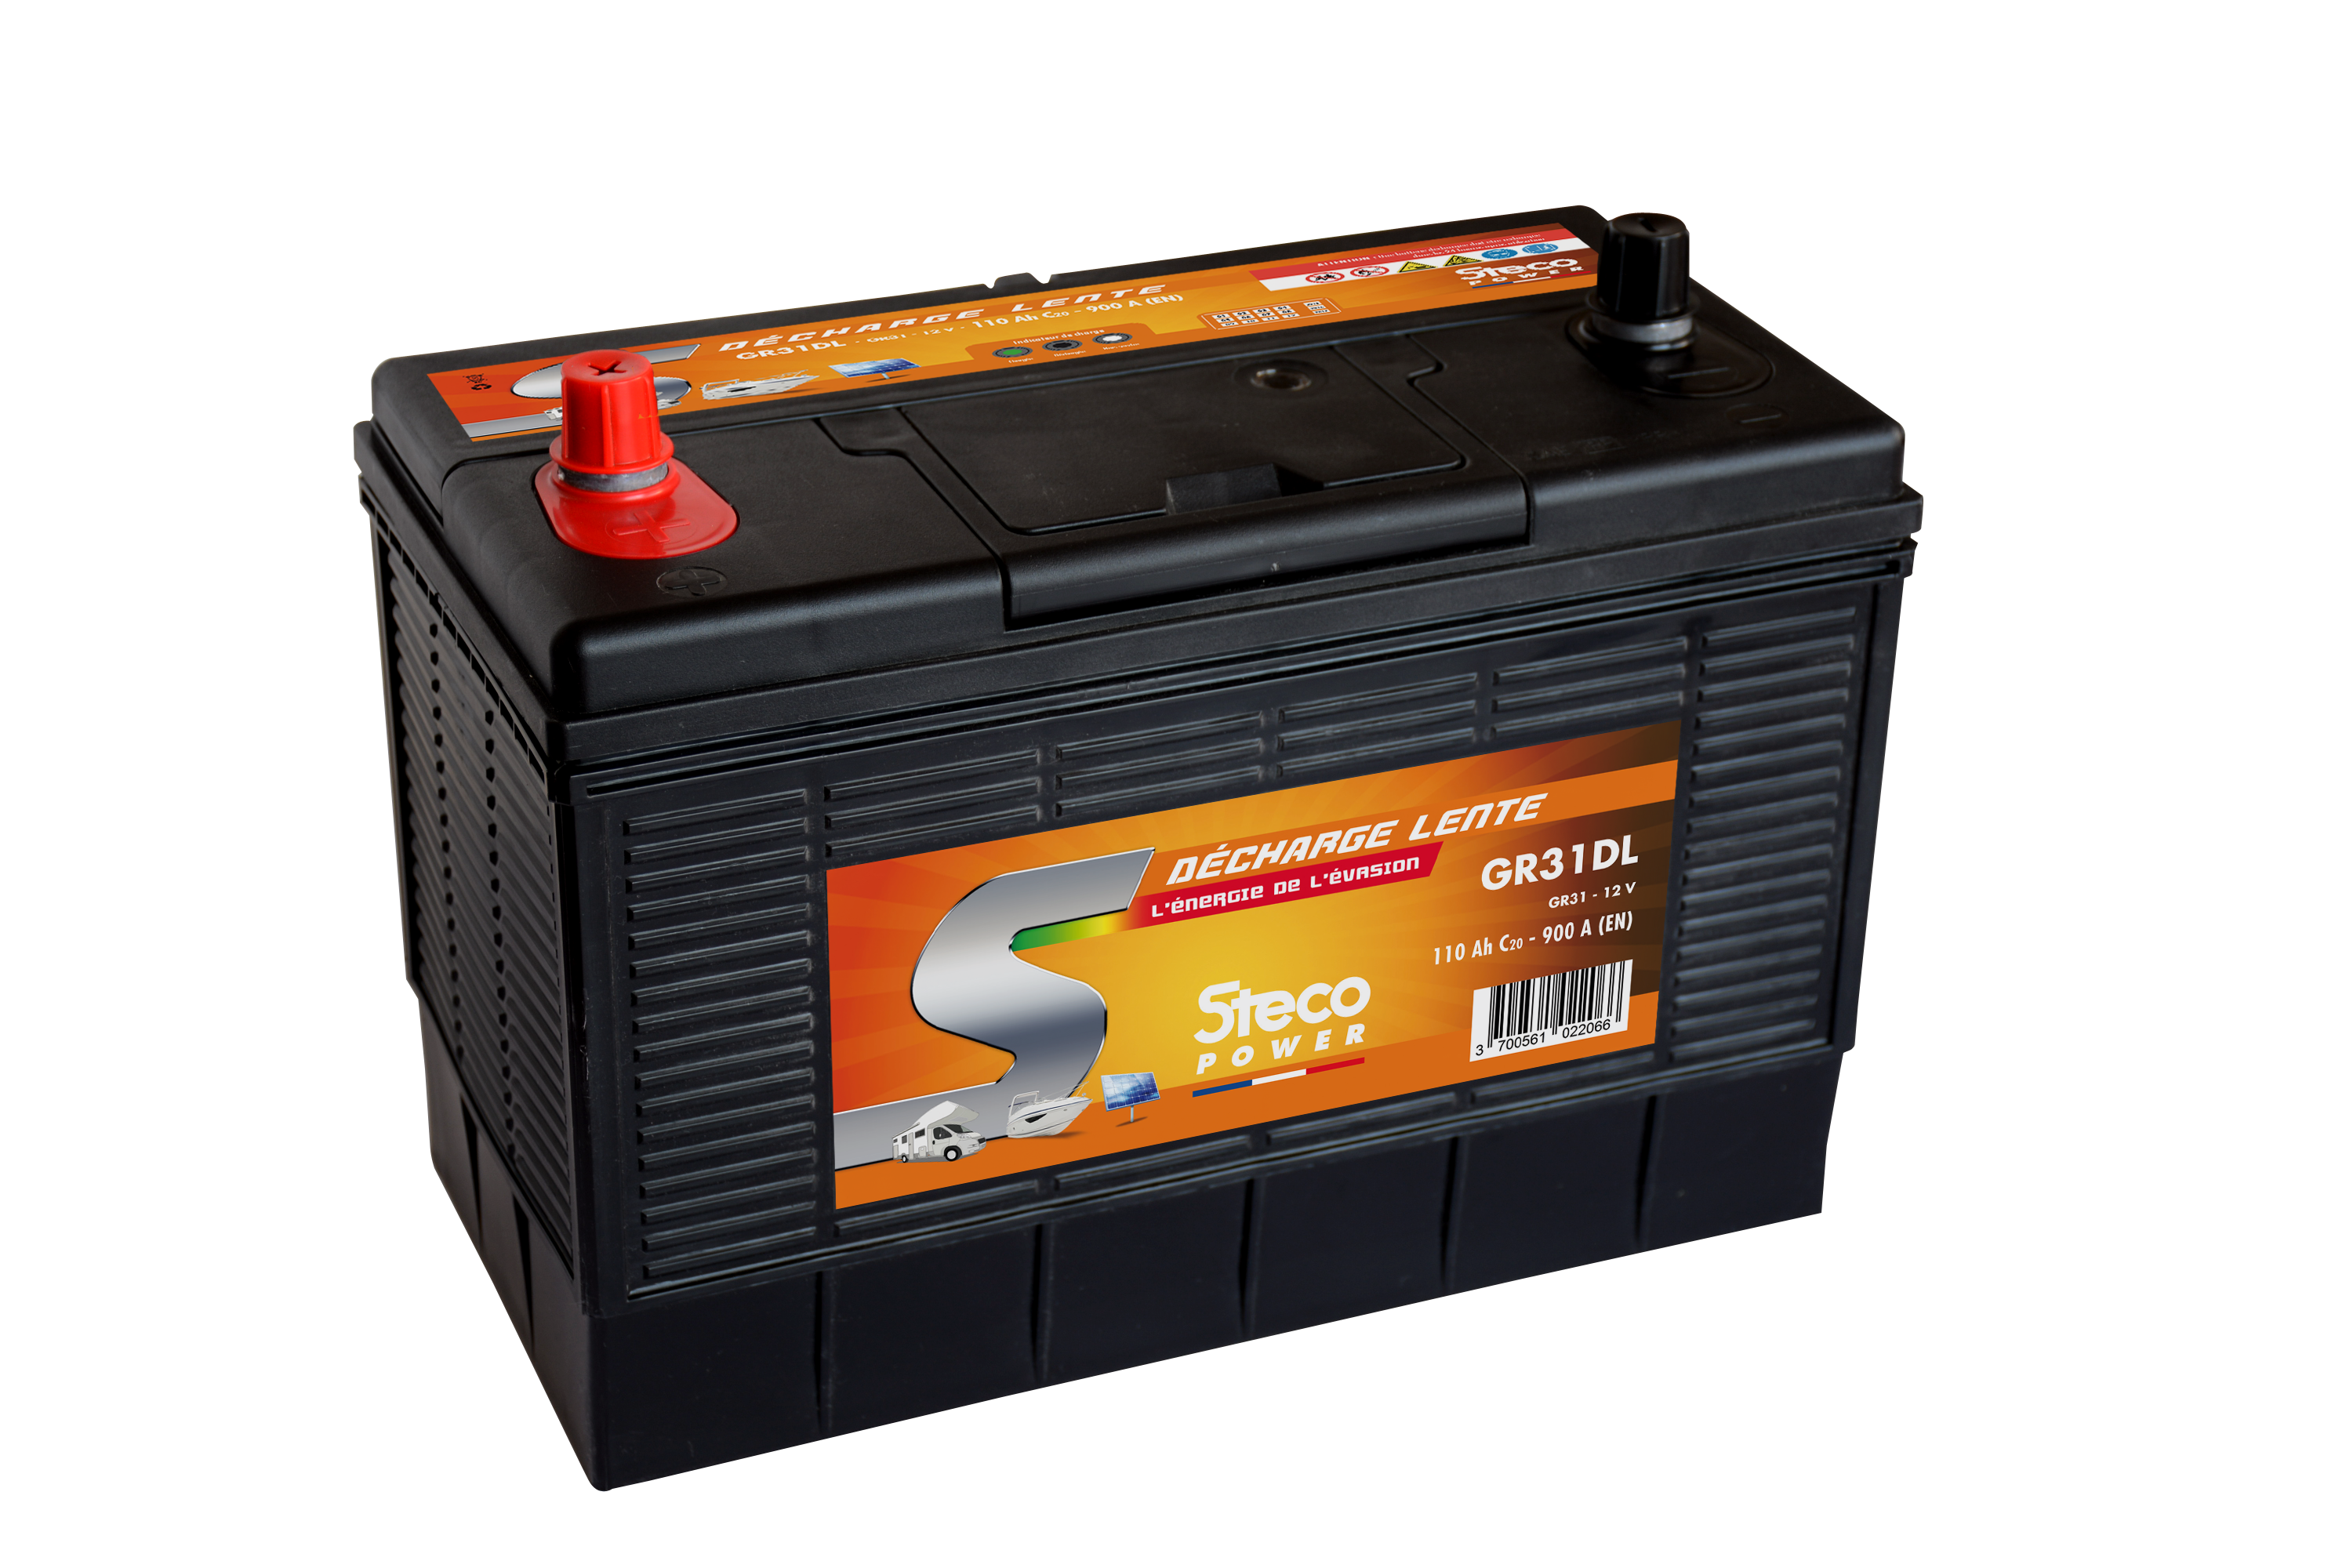 Batterie camping car decharge lente 110ah